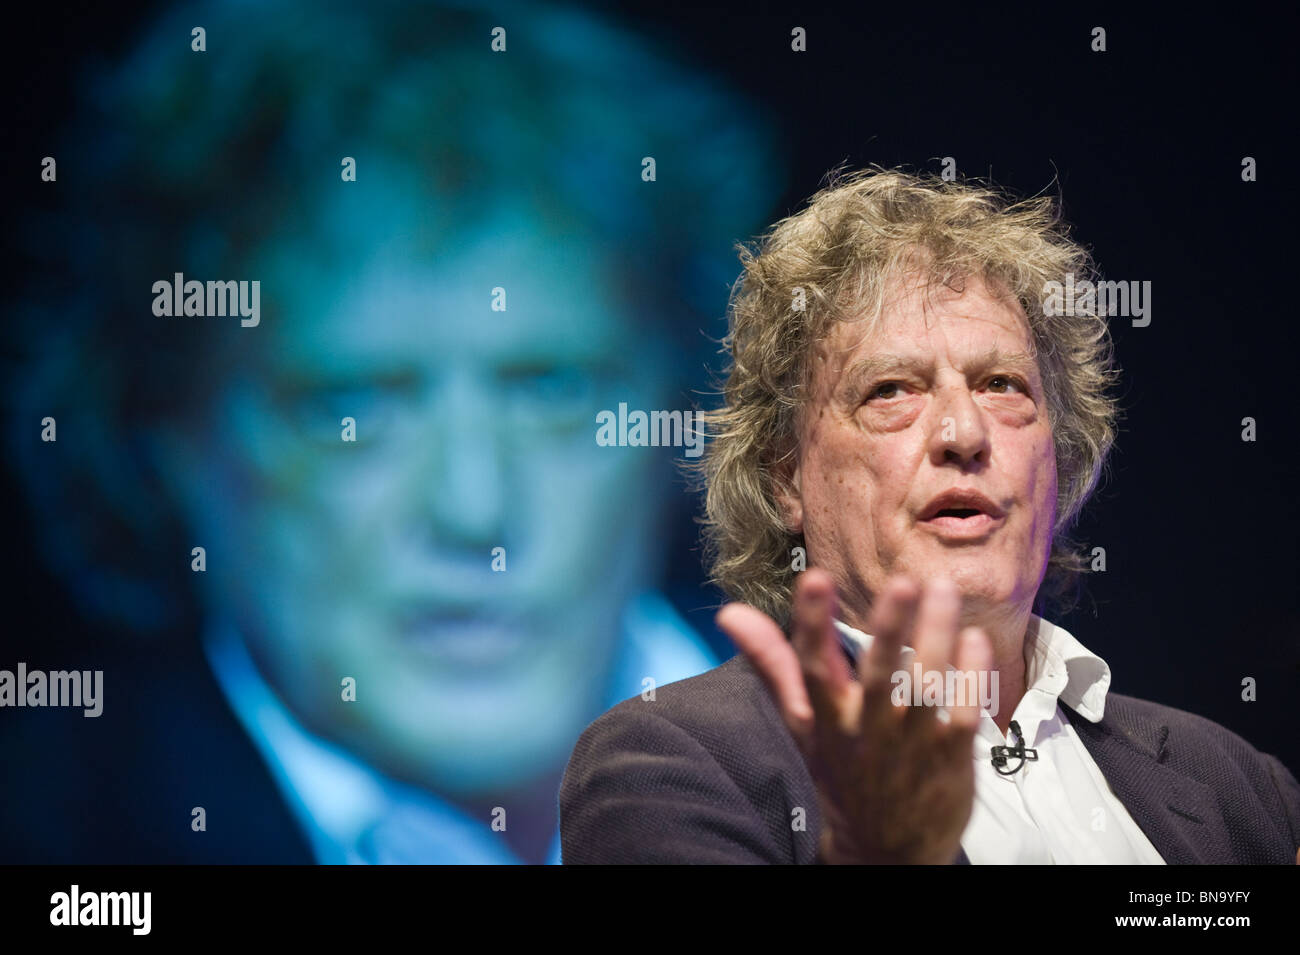 british-playwright-sir-tom-stoppard-pictured-in-conversation-at-hay-BN9YFY.jpg